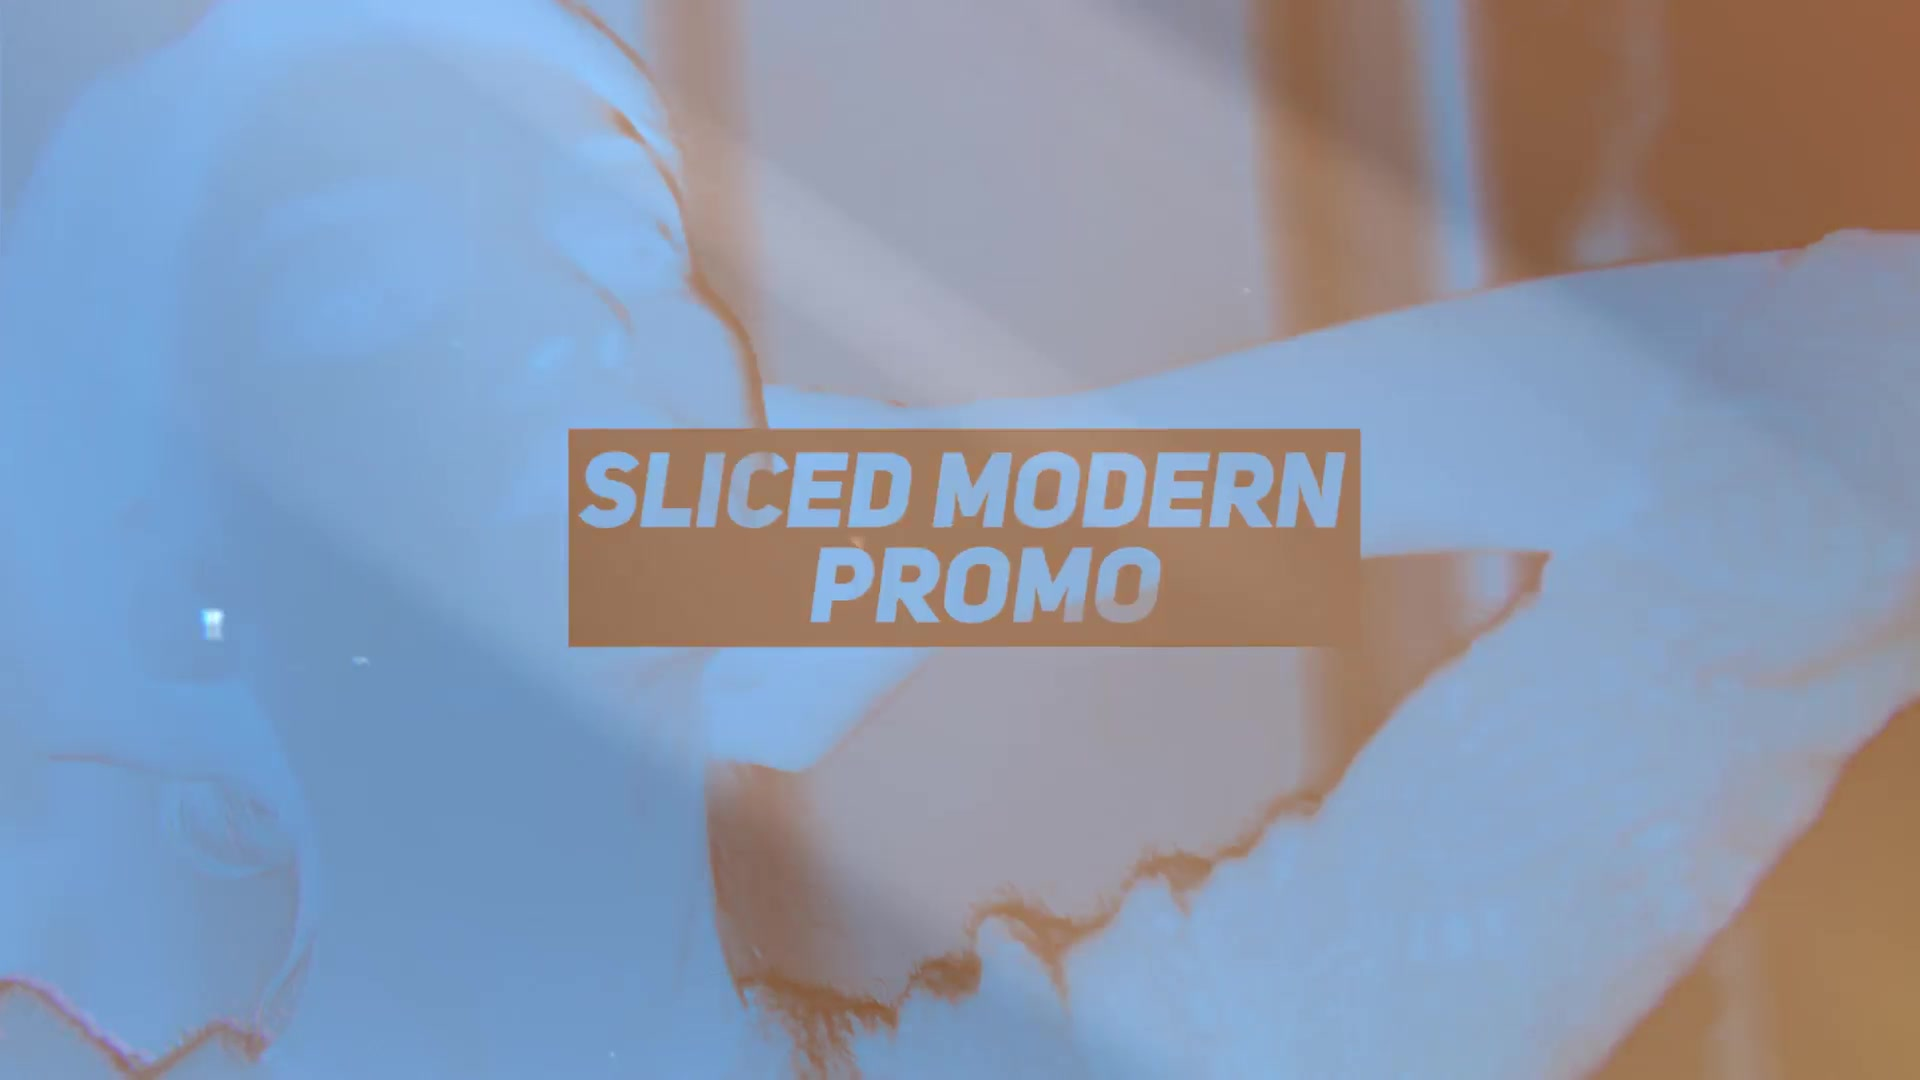 Sliced Modern Promo - Download Videohive 20789431